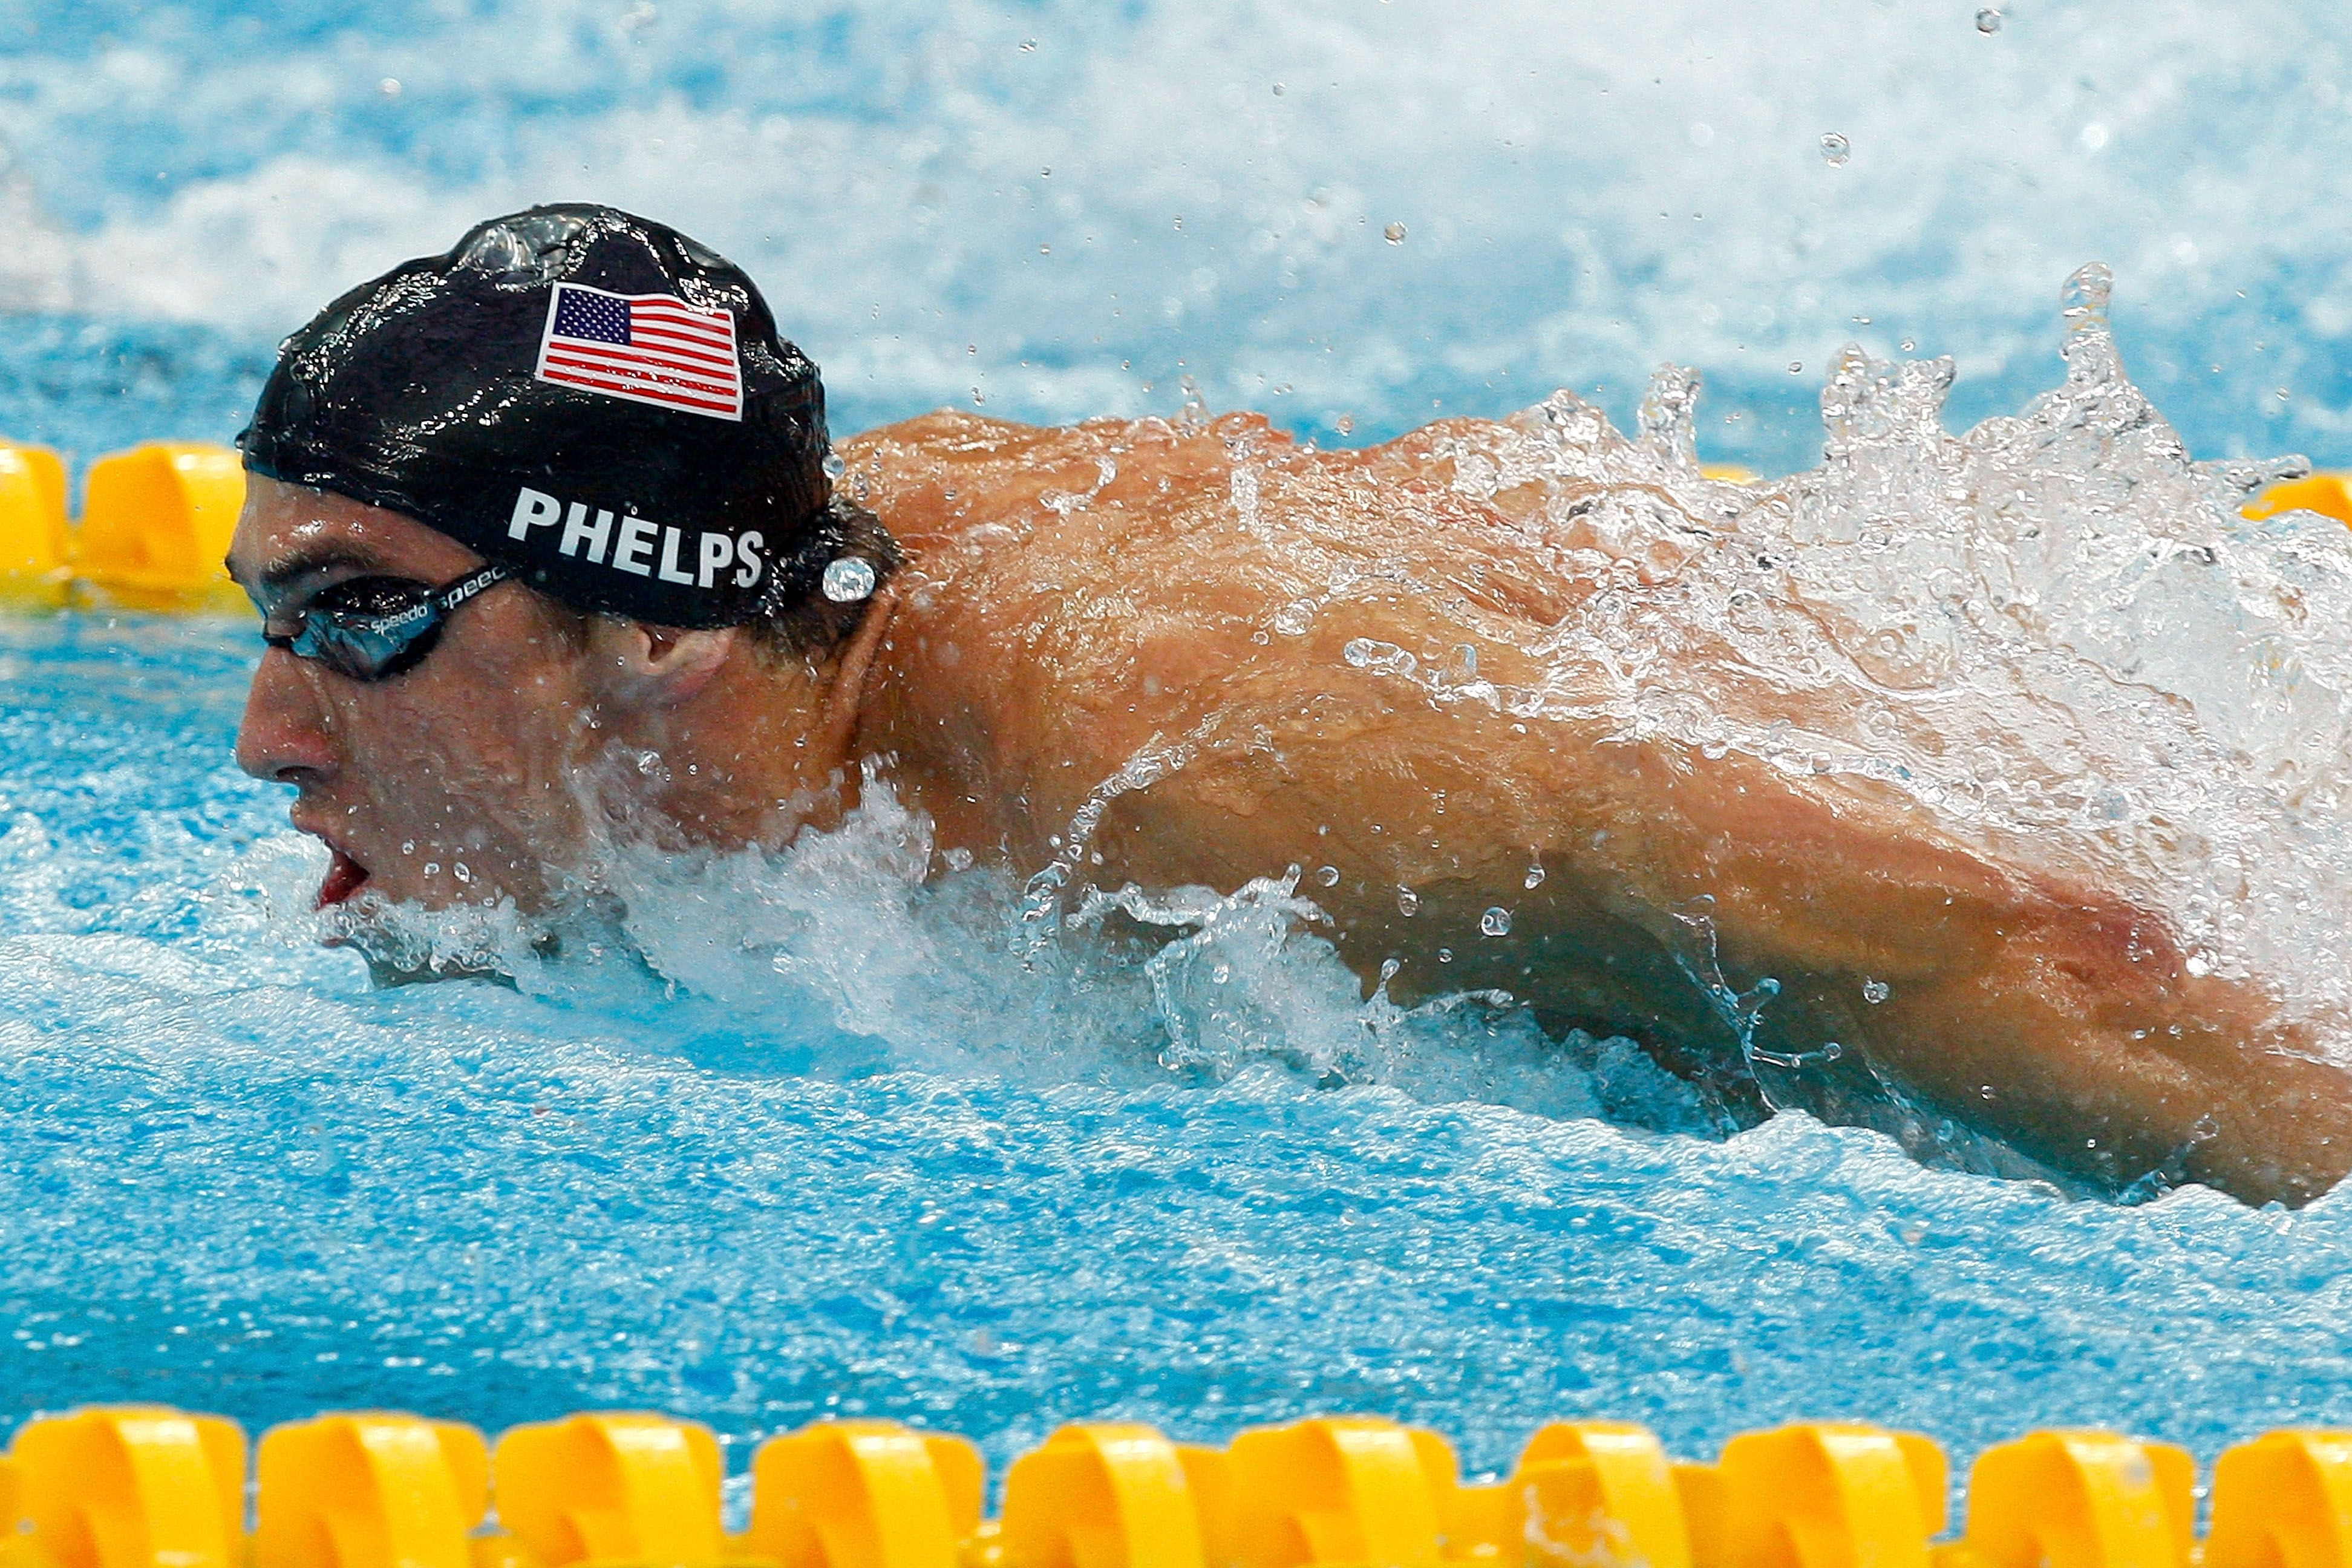 olympic swimming michael phelps photo by cameron spencergetty images